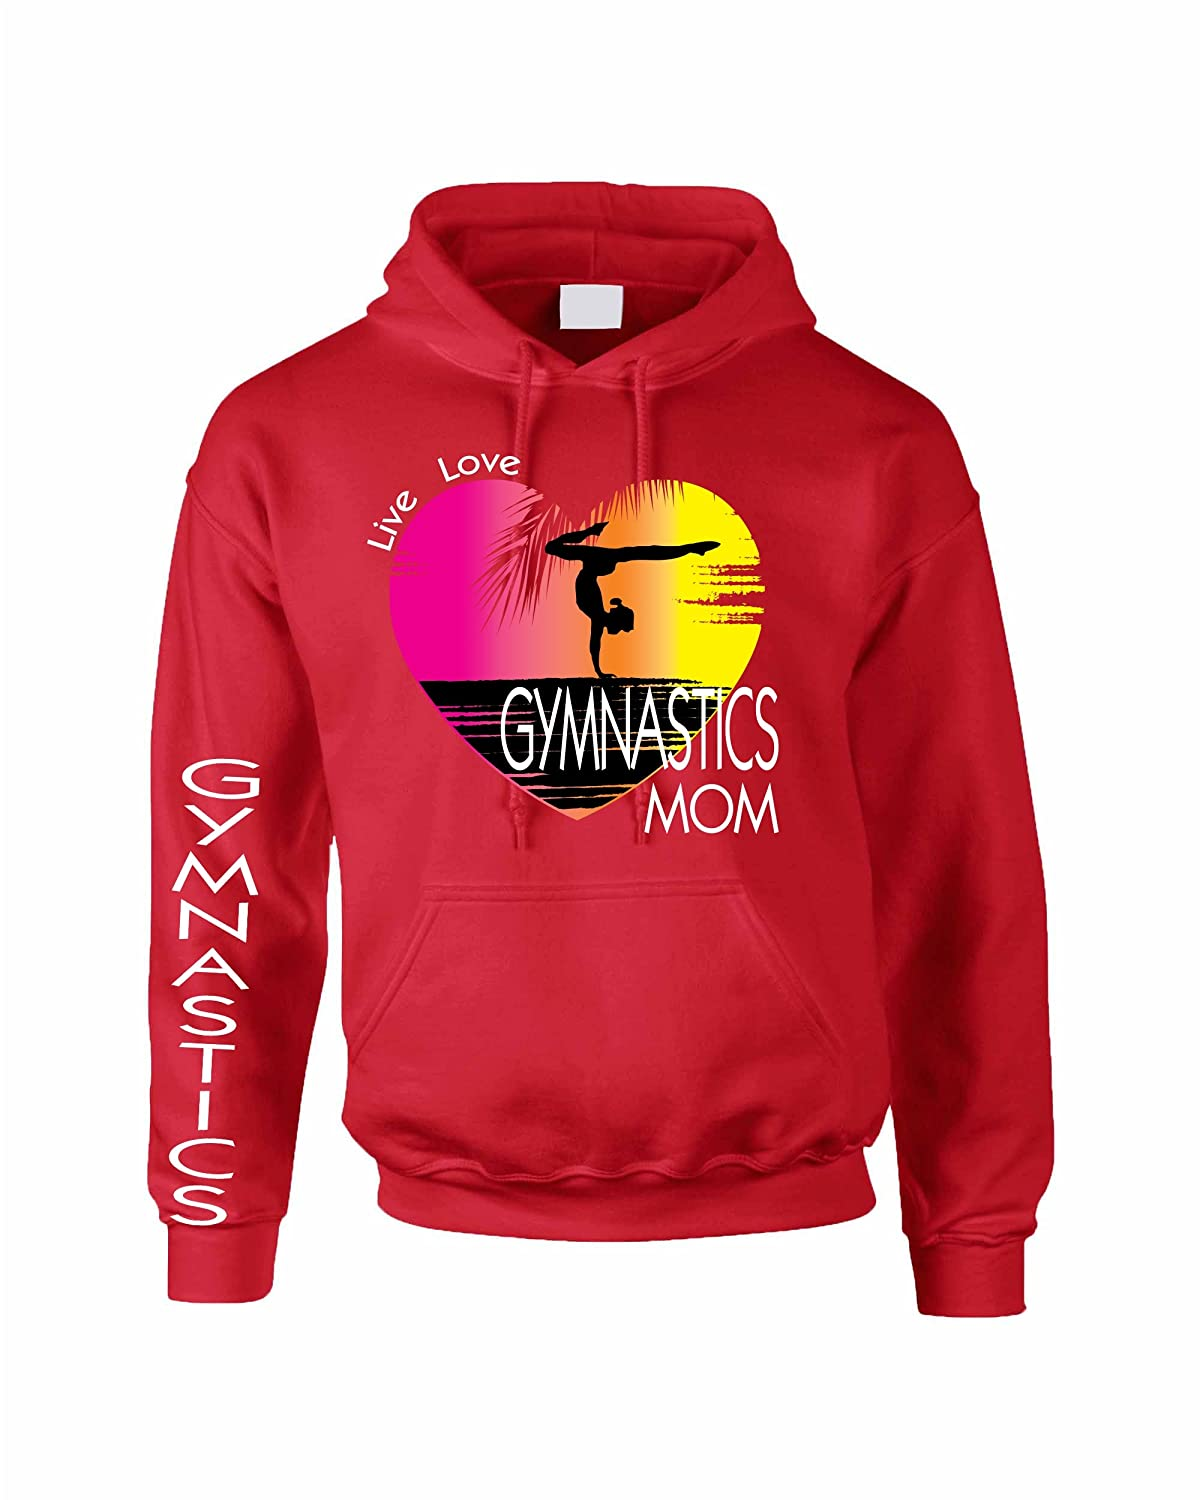 Allntrends Adult Hoodie Sweatshirt Gymnastics Mom Pink Print Gym Top